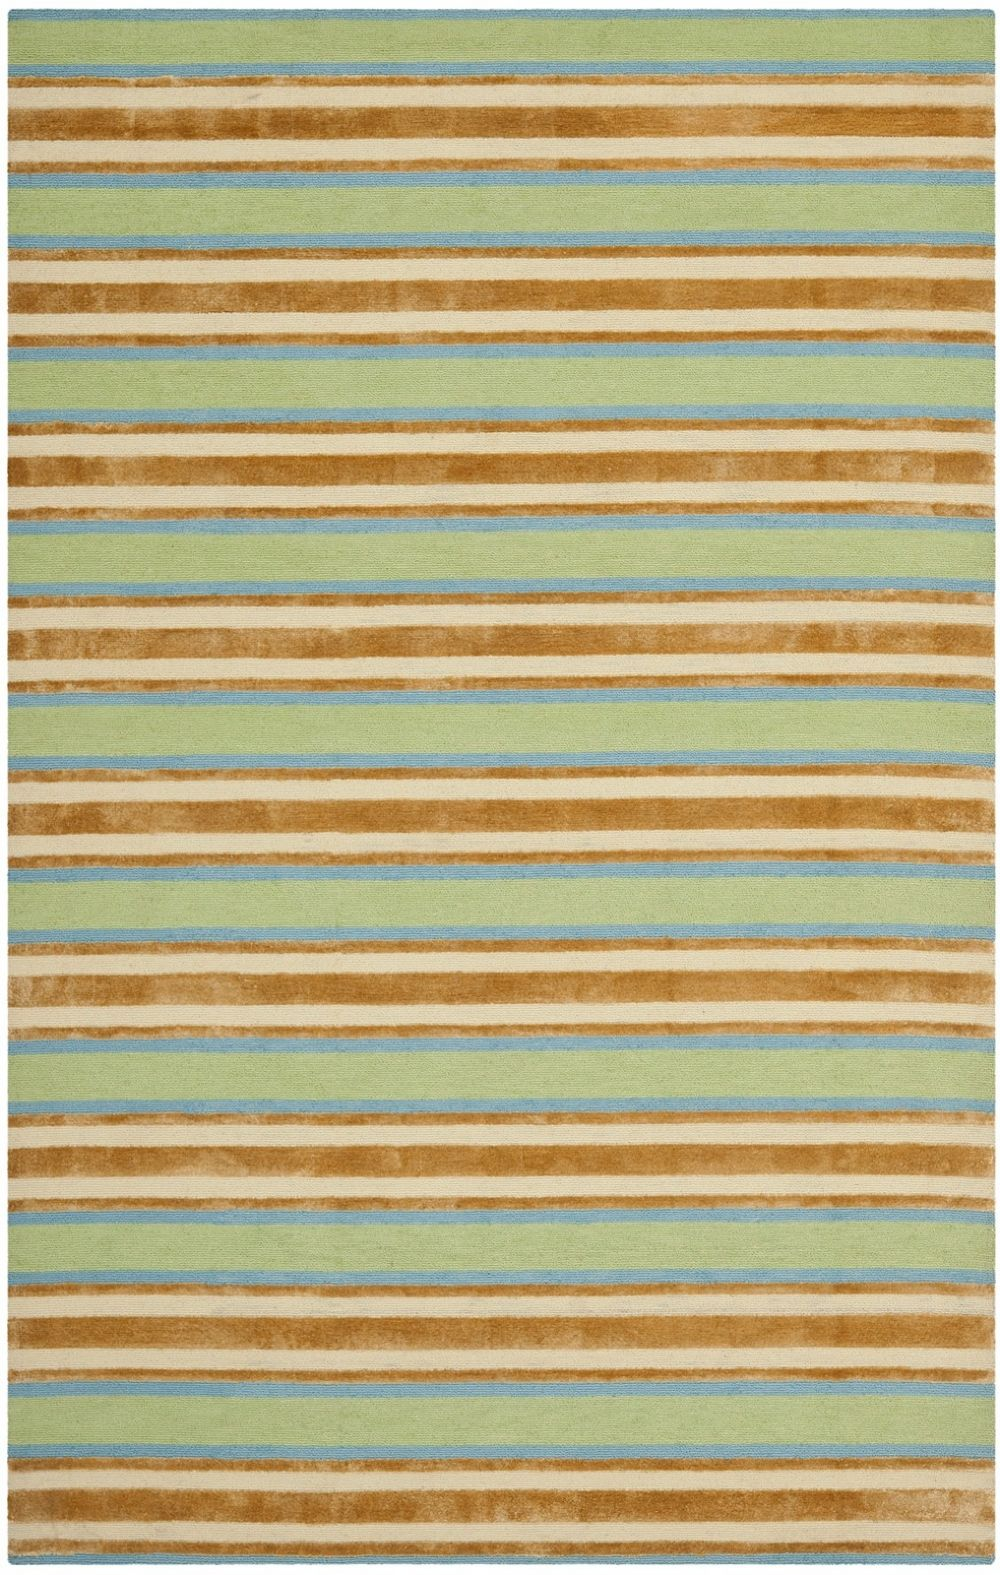 safavieh isaac mizrahi contemporary area rug collection